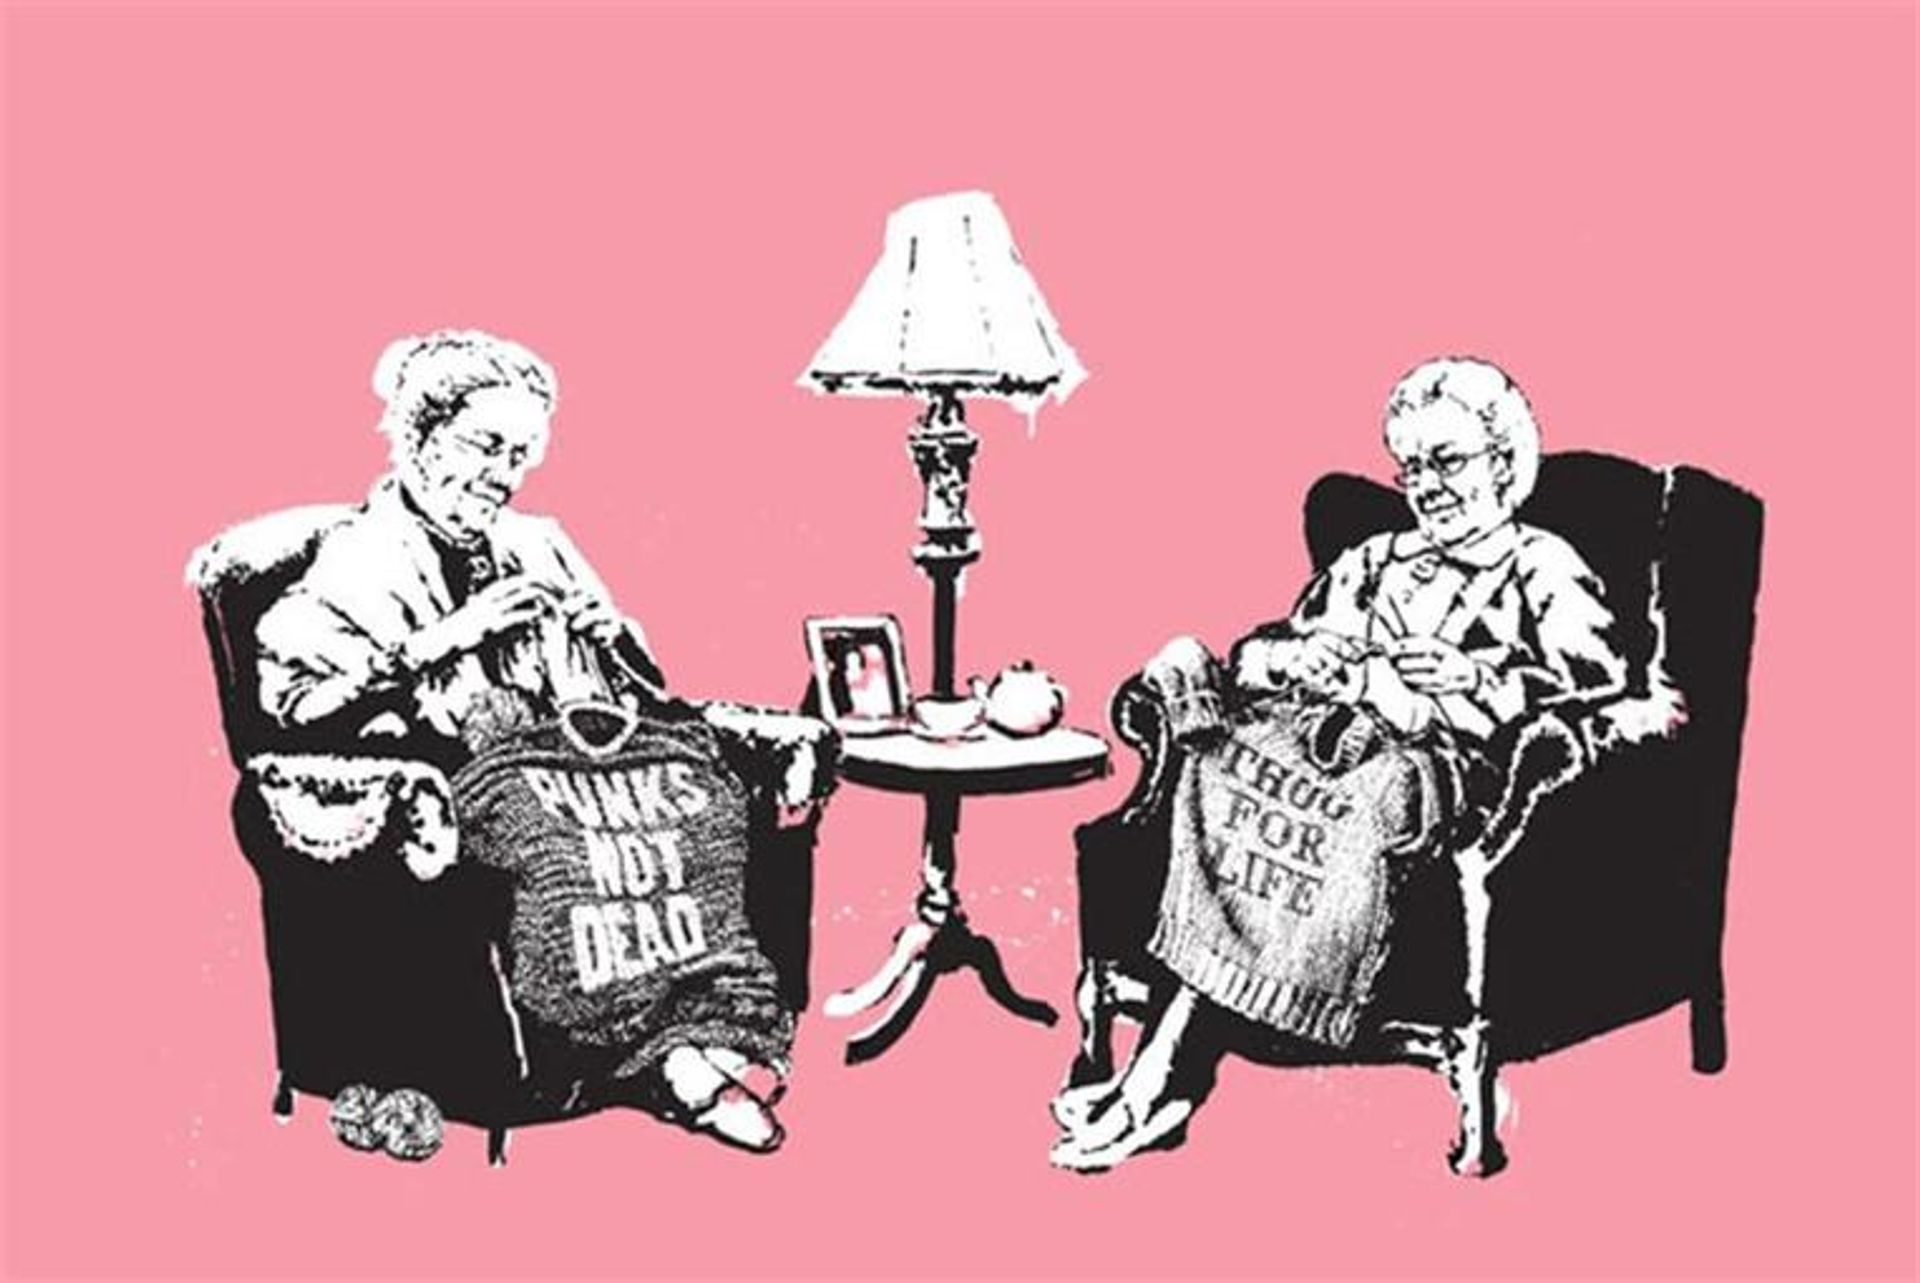 Banksy's Grannies painting was first shown in his Barely Legal show in Los Angeles in 2006 alongside 100 limited edition prints